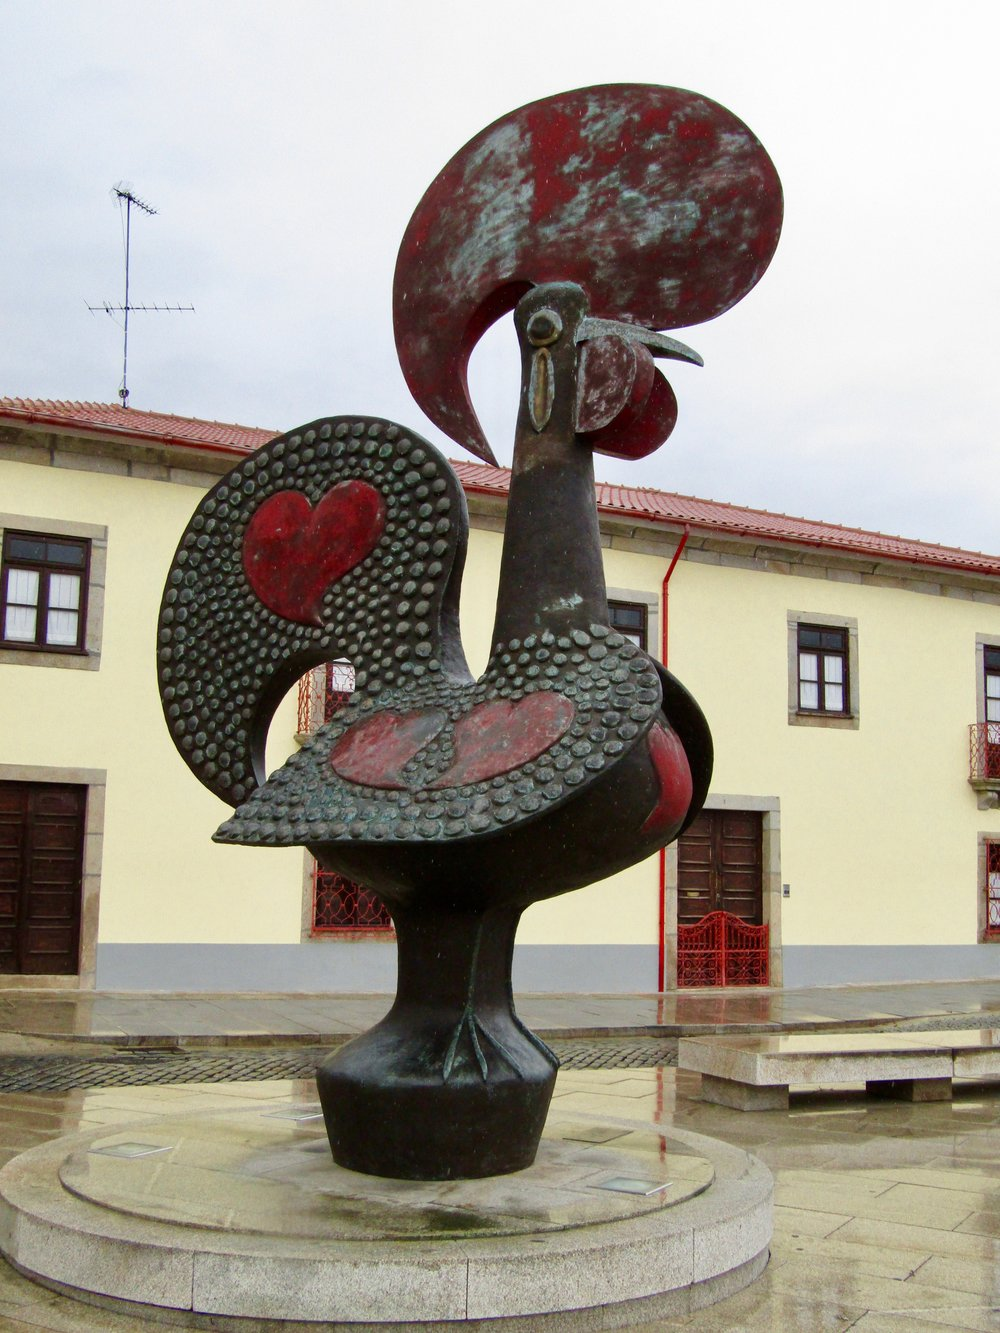 Proudly standing Portugal's emblematic rooster!